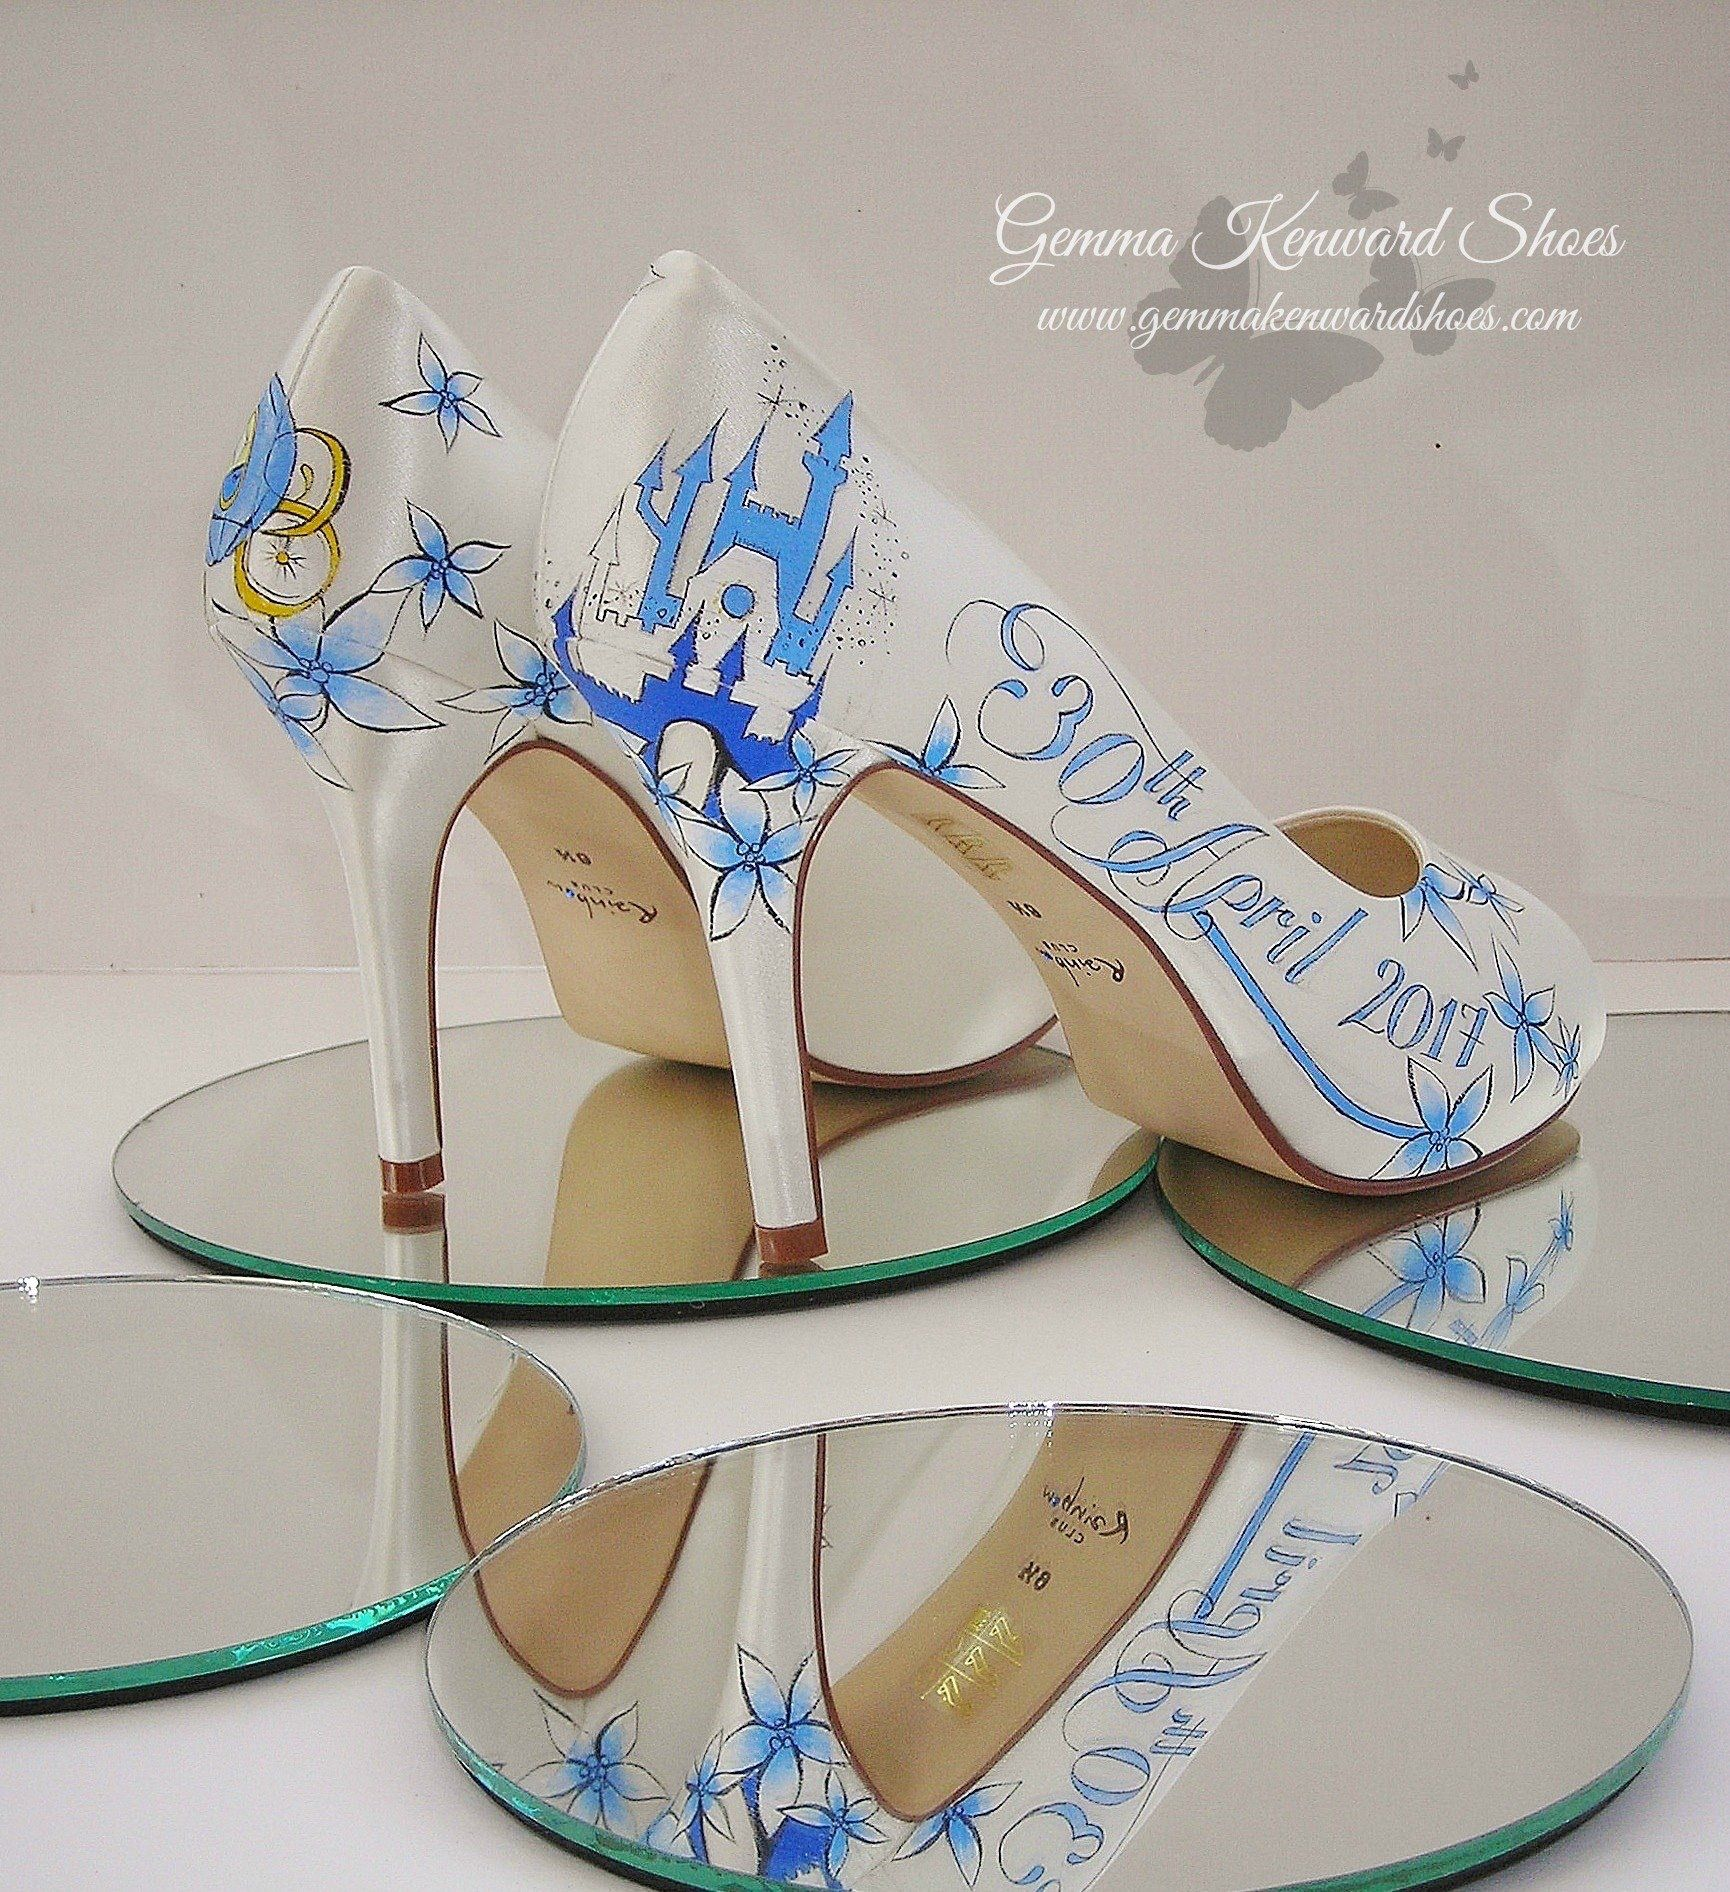 Hand Painted Wedding Shoes With A Cinderella Theme Shoes Wedding Cinderella Disney Disneywedding Bride Brid Bride Shoes Painted Shoes Hand Painted Shoes